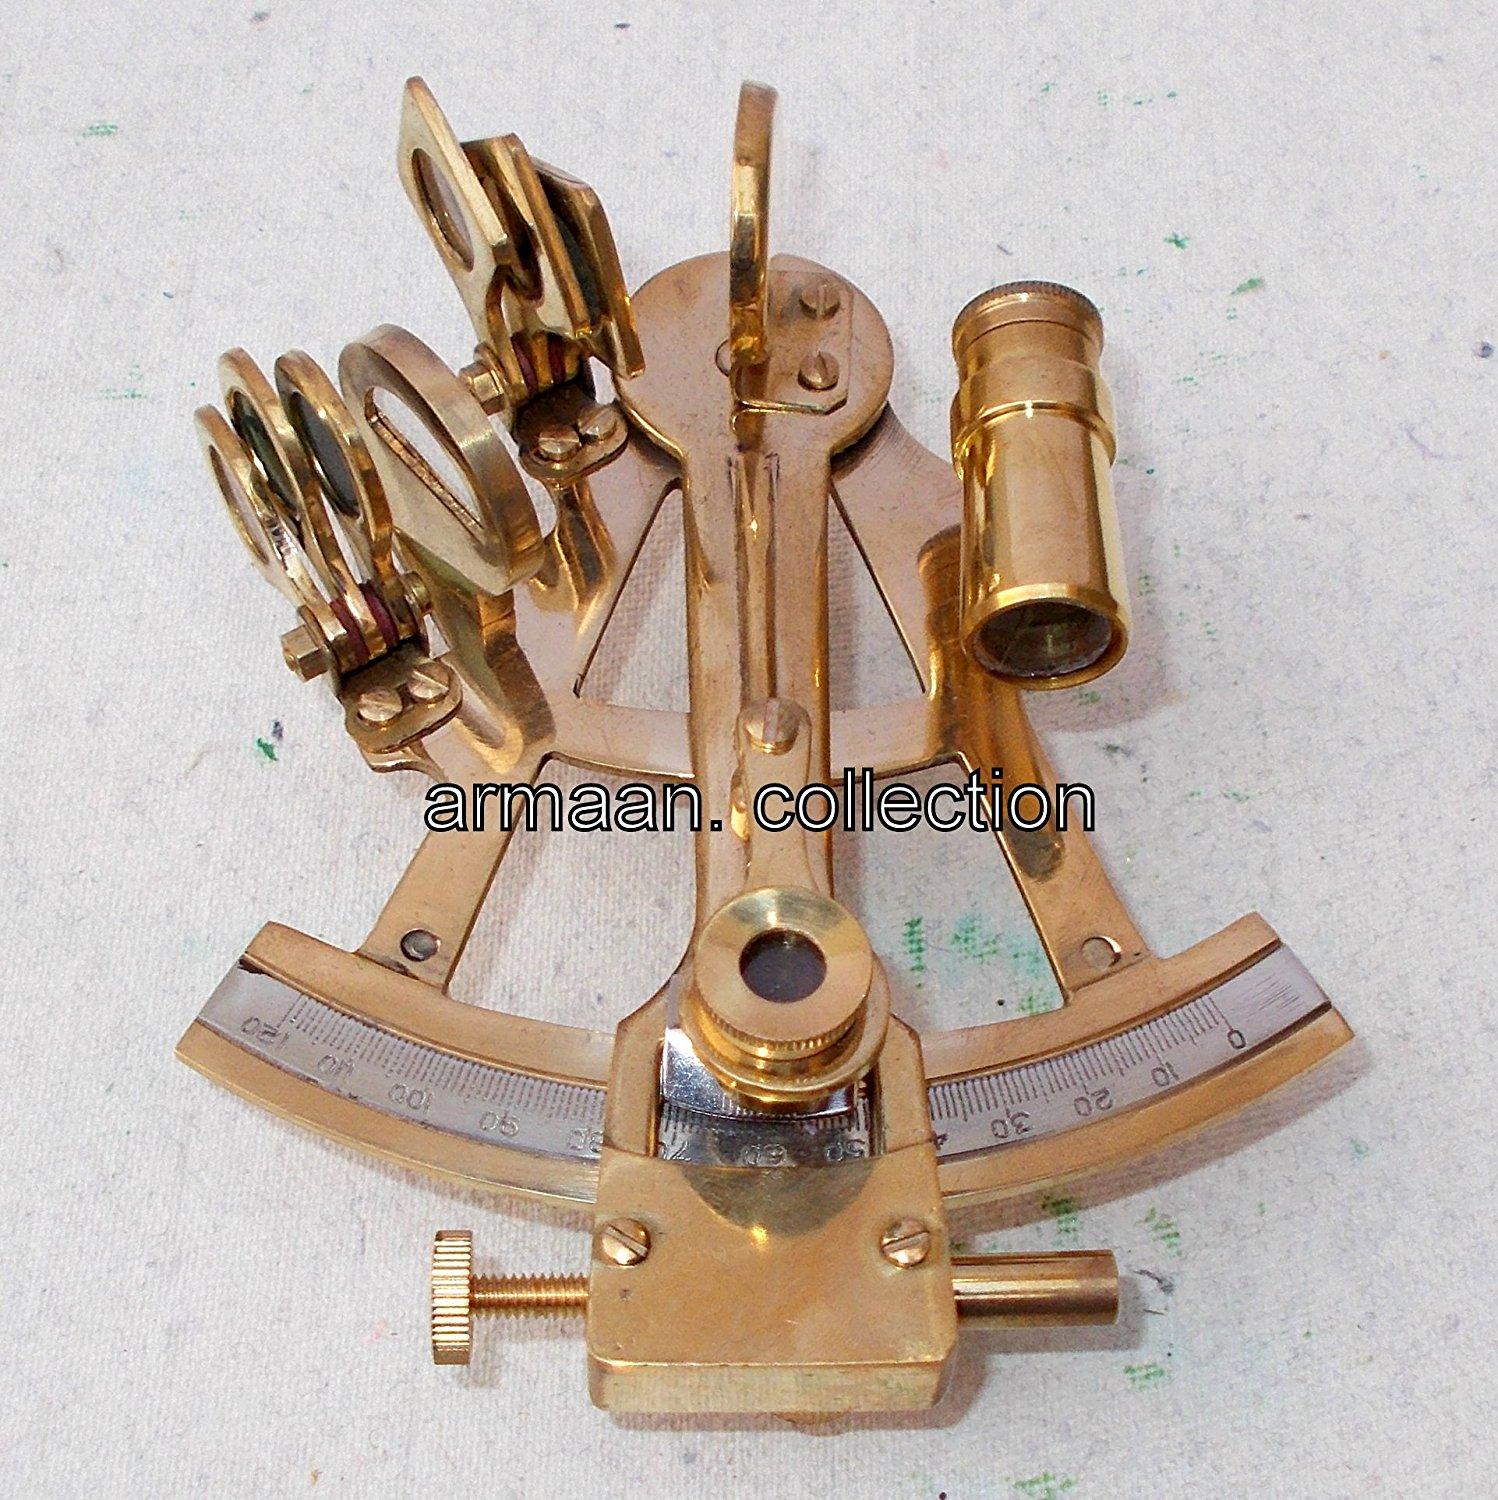 VINTAGE BRASS MARINE SEXTANT ASTROLABE ANTIQUE MARITIME NAUTICAL SHIP SEXTANT